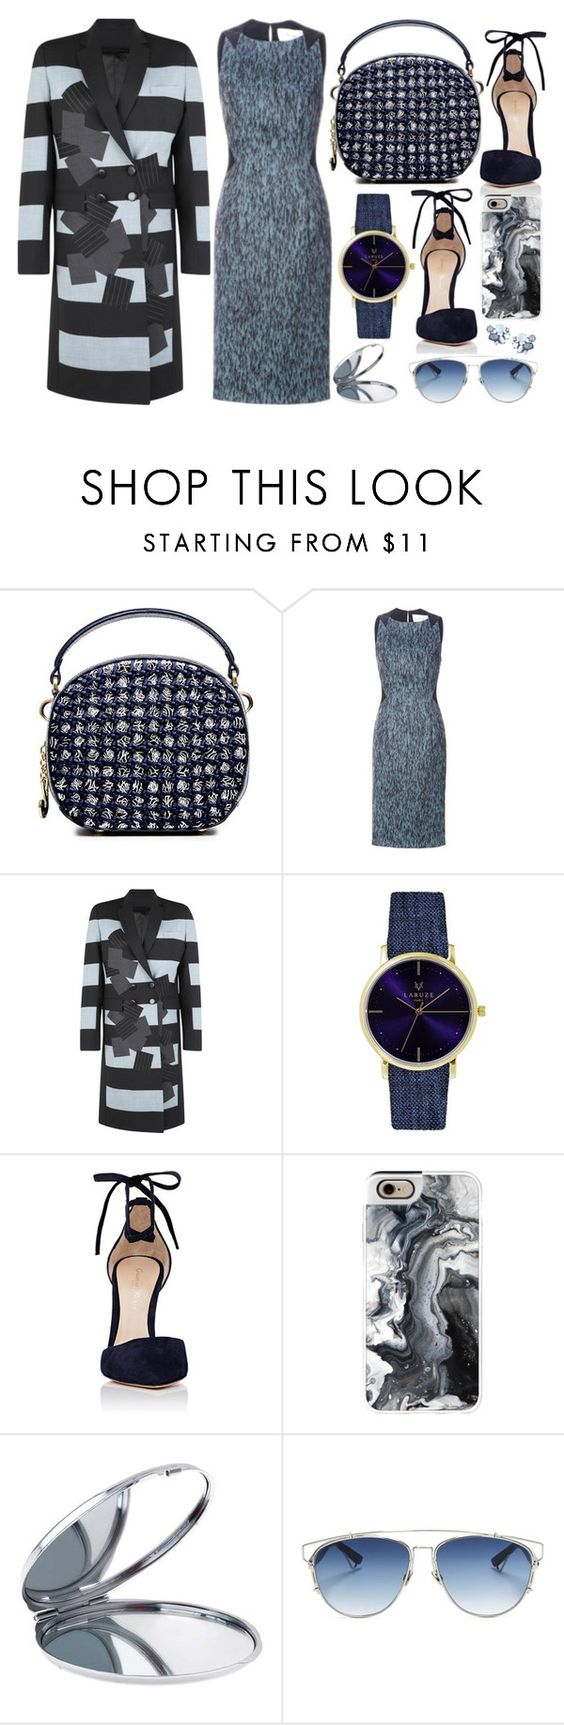 """""""Unconventional Gradient"""" by cherieaustin on Polyvore featuring Carolina Herrera, Jonathan Saunders, Gianvito Rossi, Casetify, Miss Selfridge, Christian Dior and Lydell NYC"""